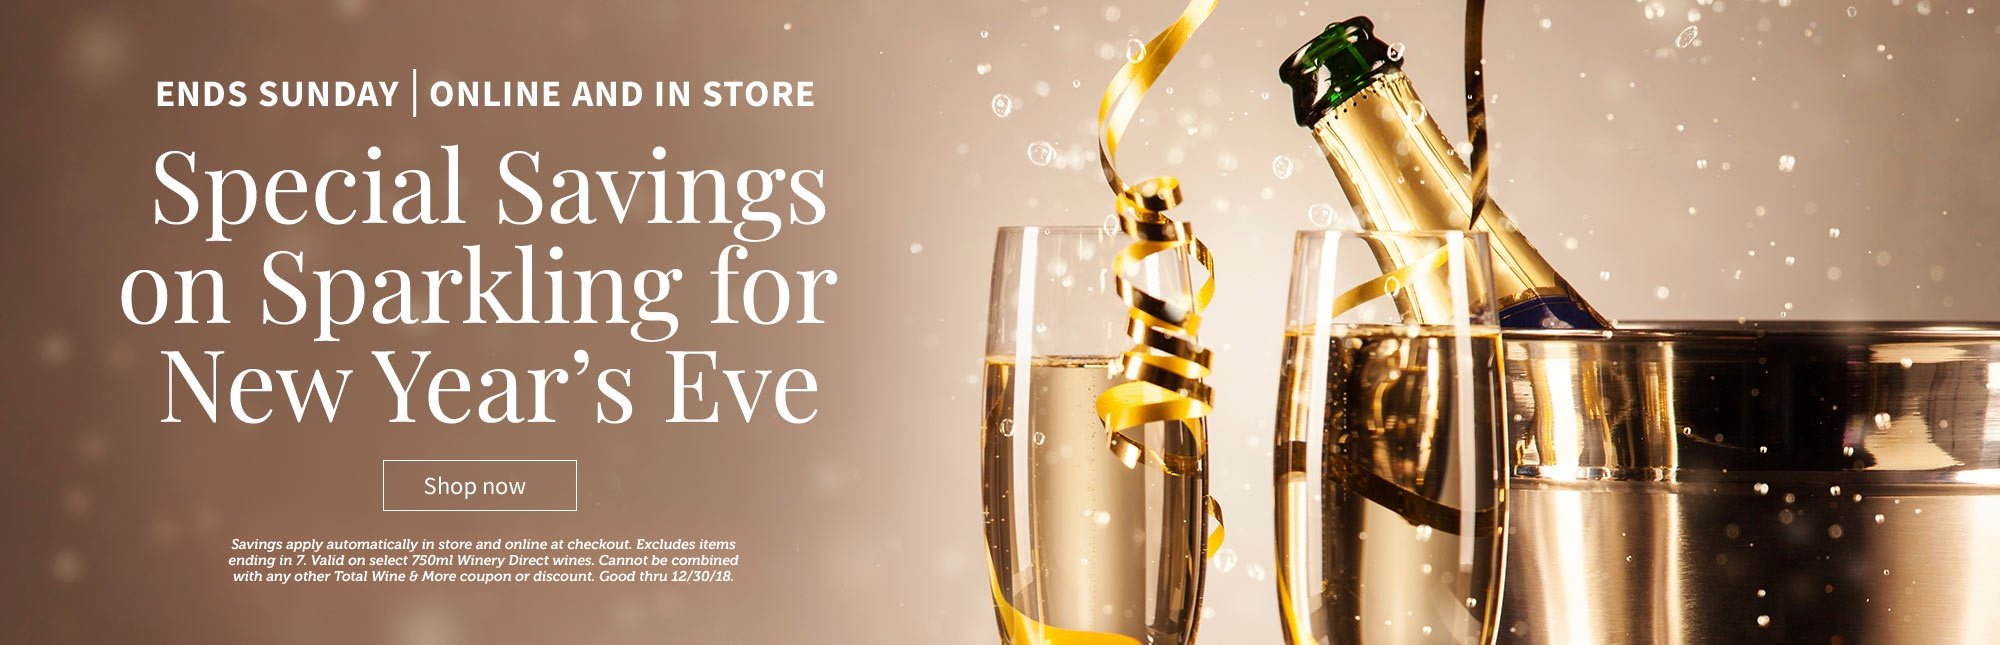 special savings on sparkling wine for new years eve through sunday 1230 savings